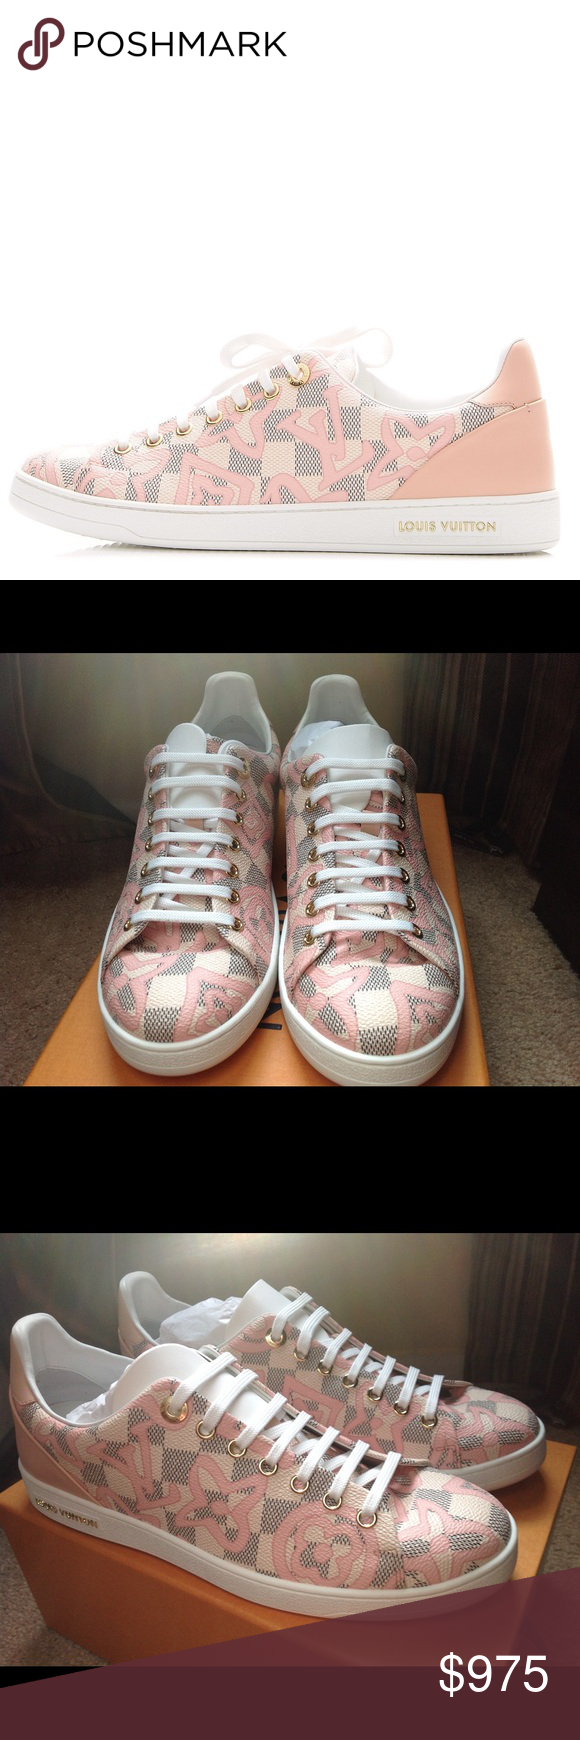 e255398d8b84 Damier Azur Tahitienne Bora Bora Sneakers Rose Ballerina. Limited Edition.  Sold out. Comes with